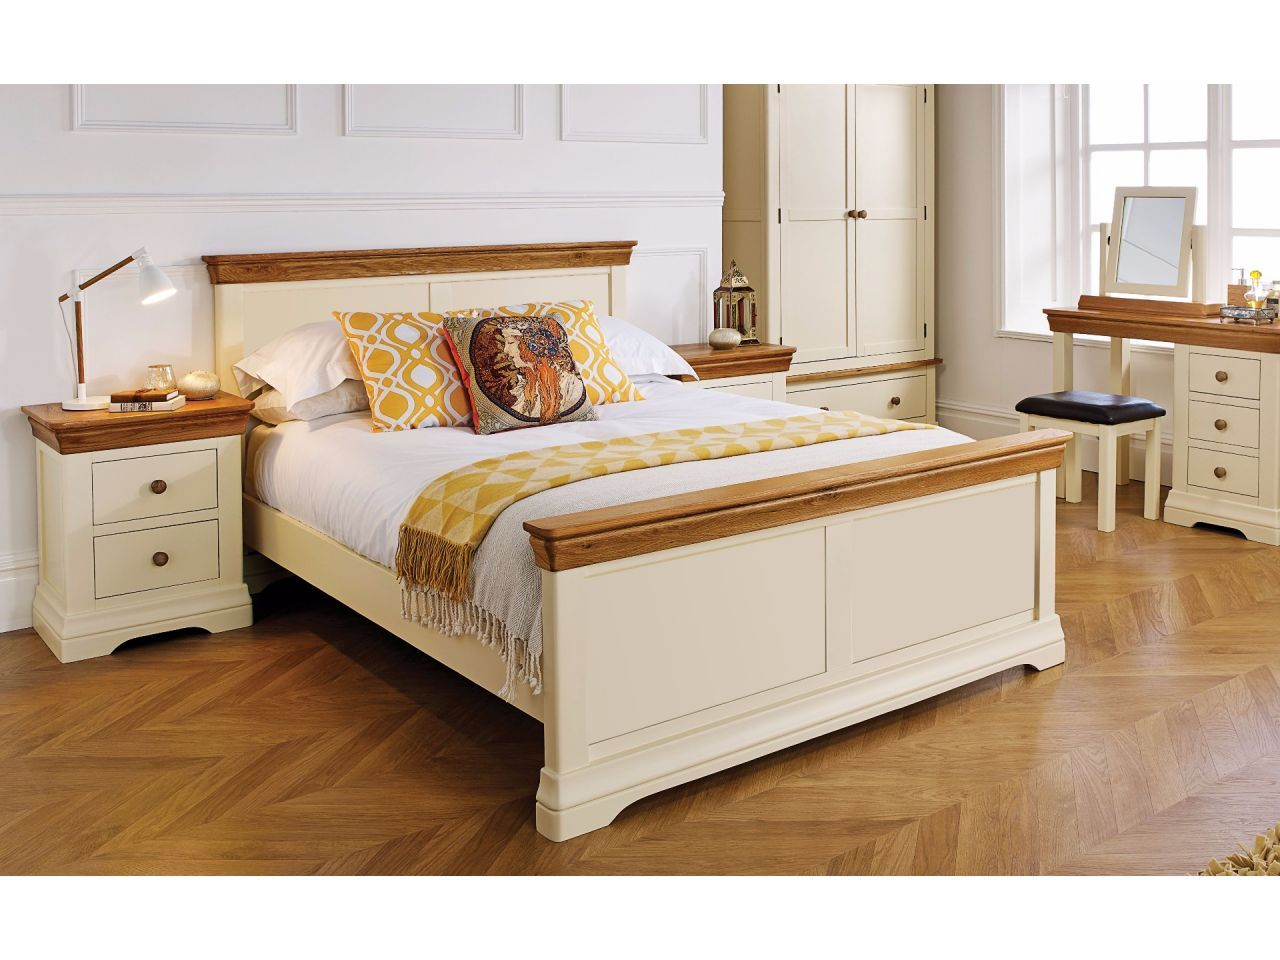 Farmhouse Country Oak Cream Painted 5 Foot King Size Bed Spring